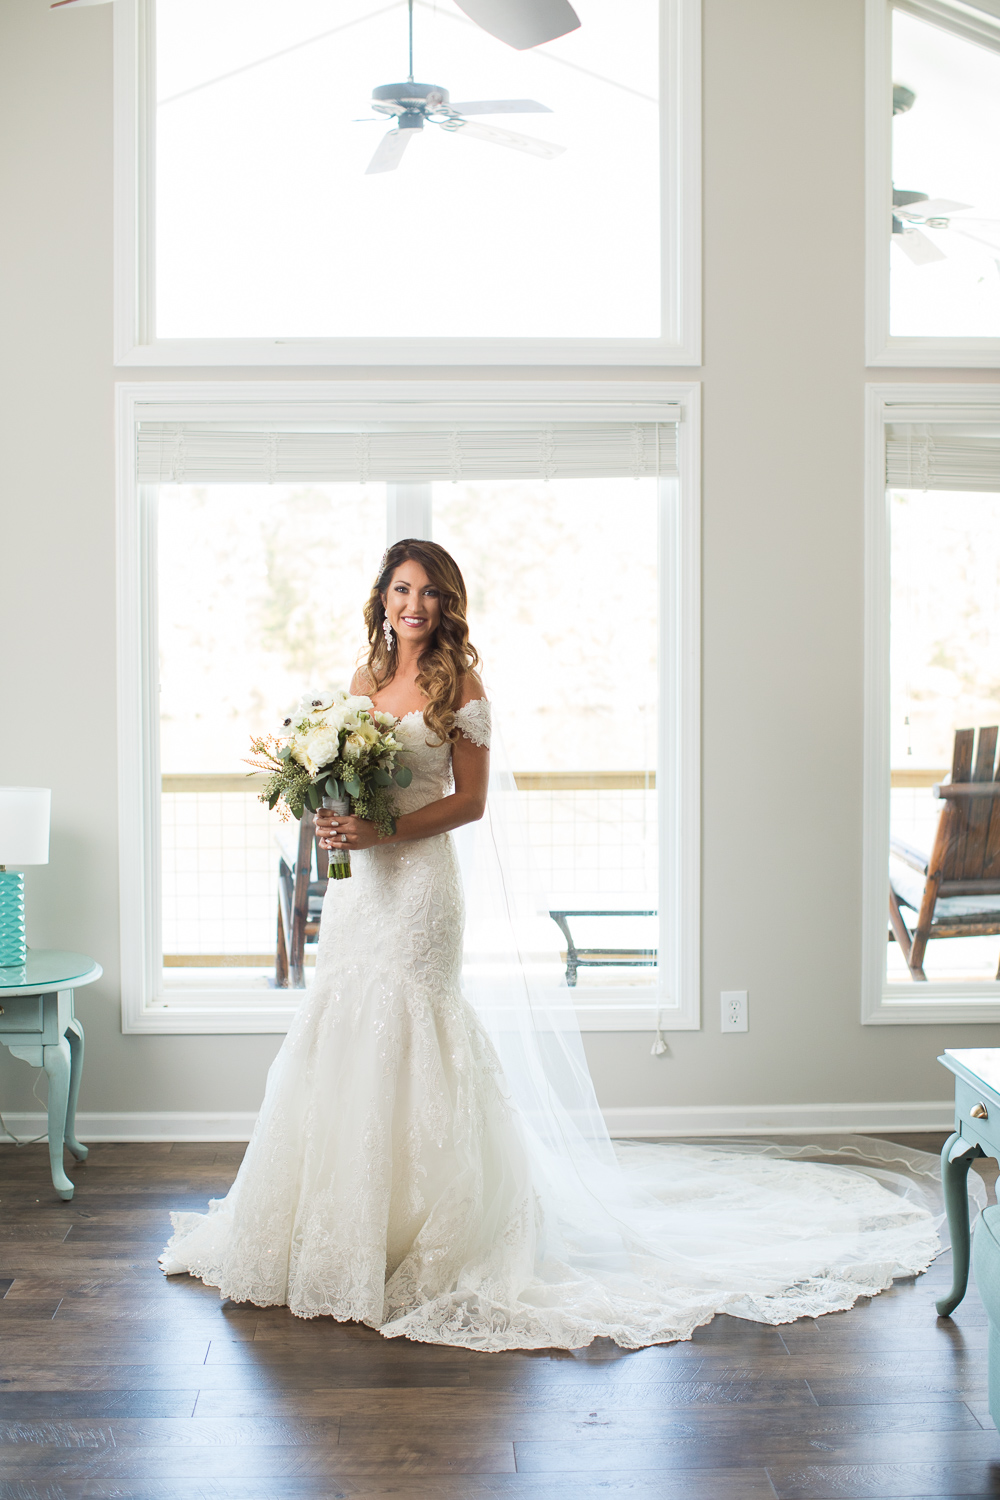 Juliana was gorgeous in her gown from The Bride and Groom Bridal Boutique!